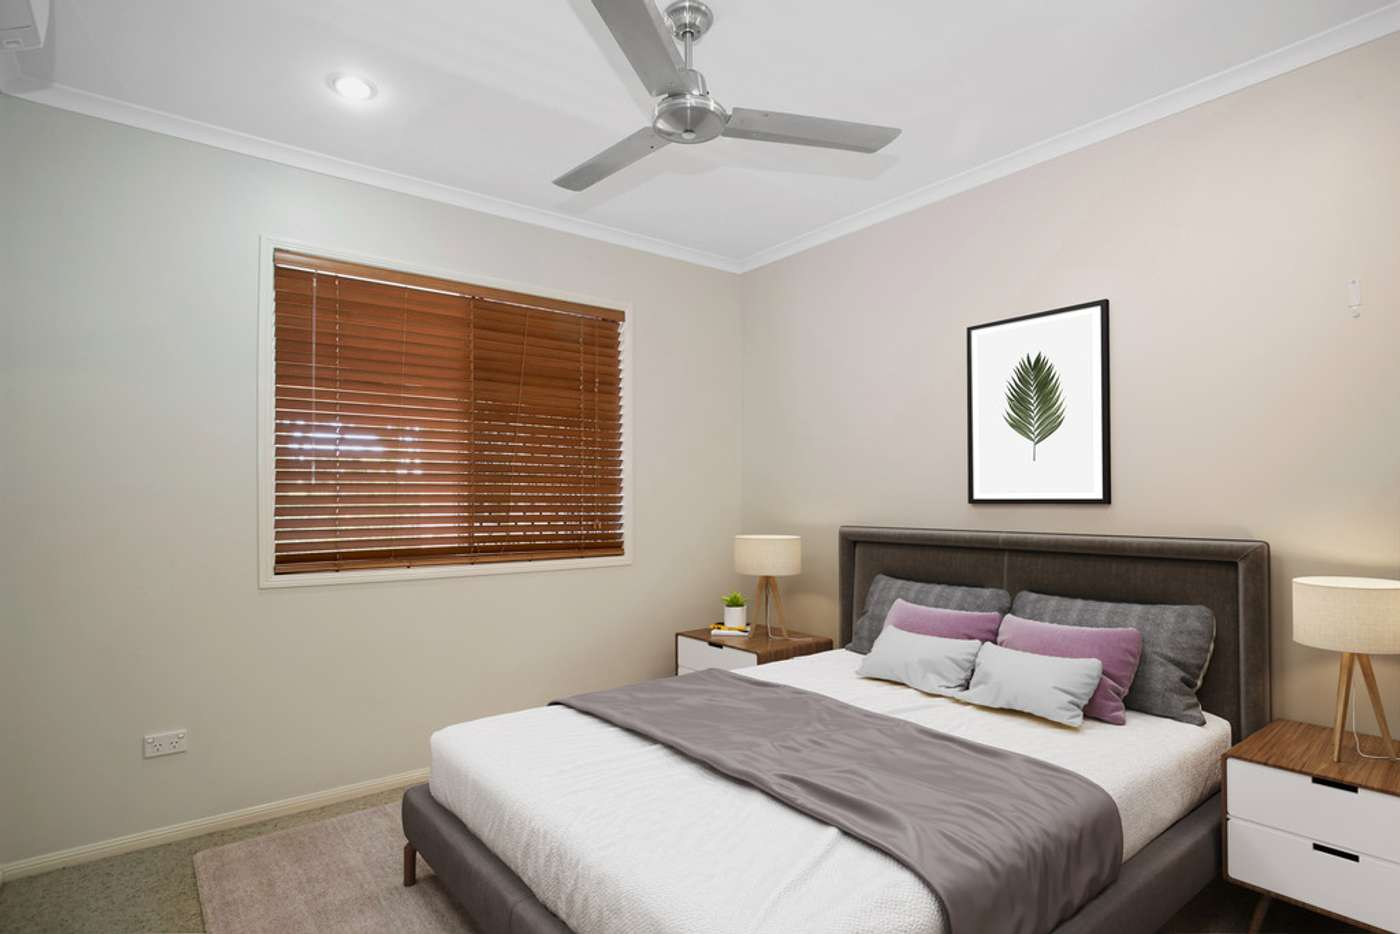 Seventh view of Homely house listing, 22 Argyle Court, Beaconsfield QLD 4740